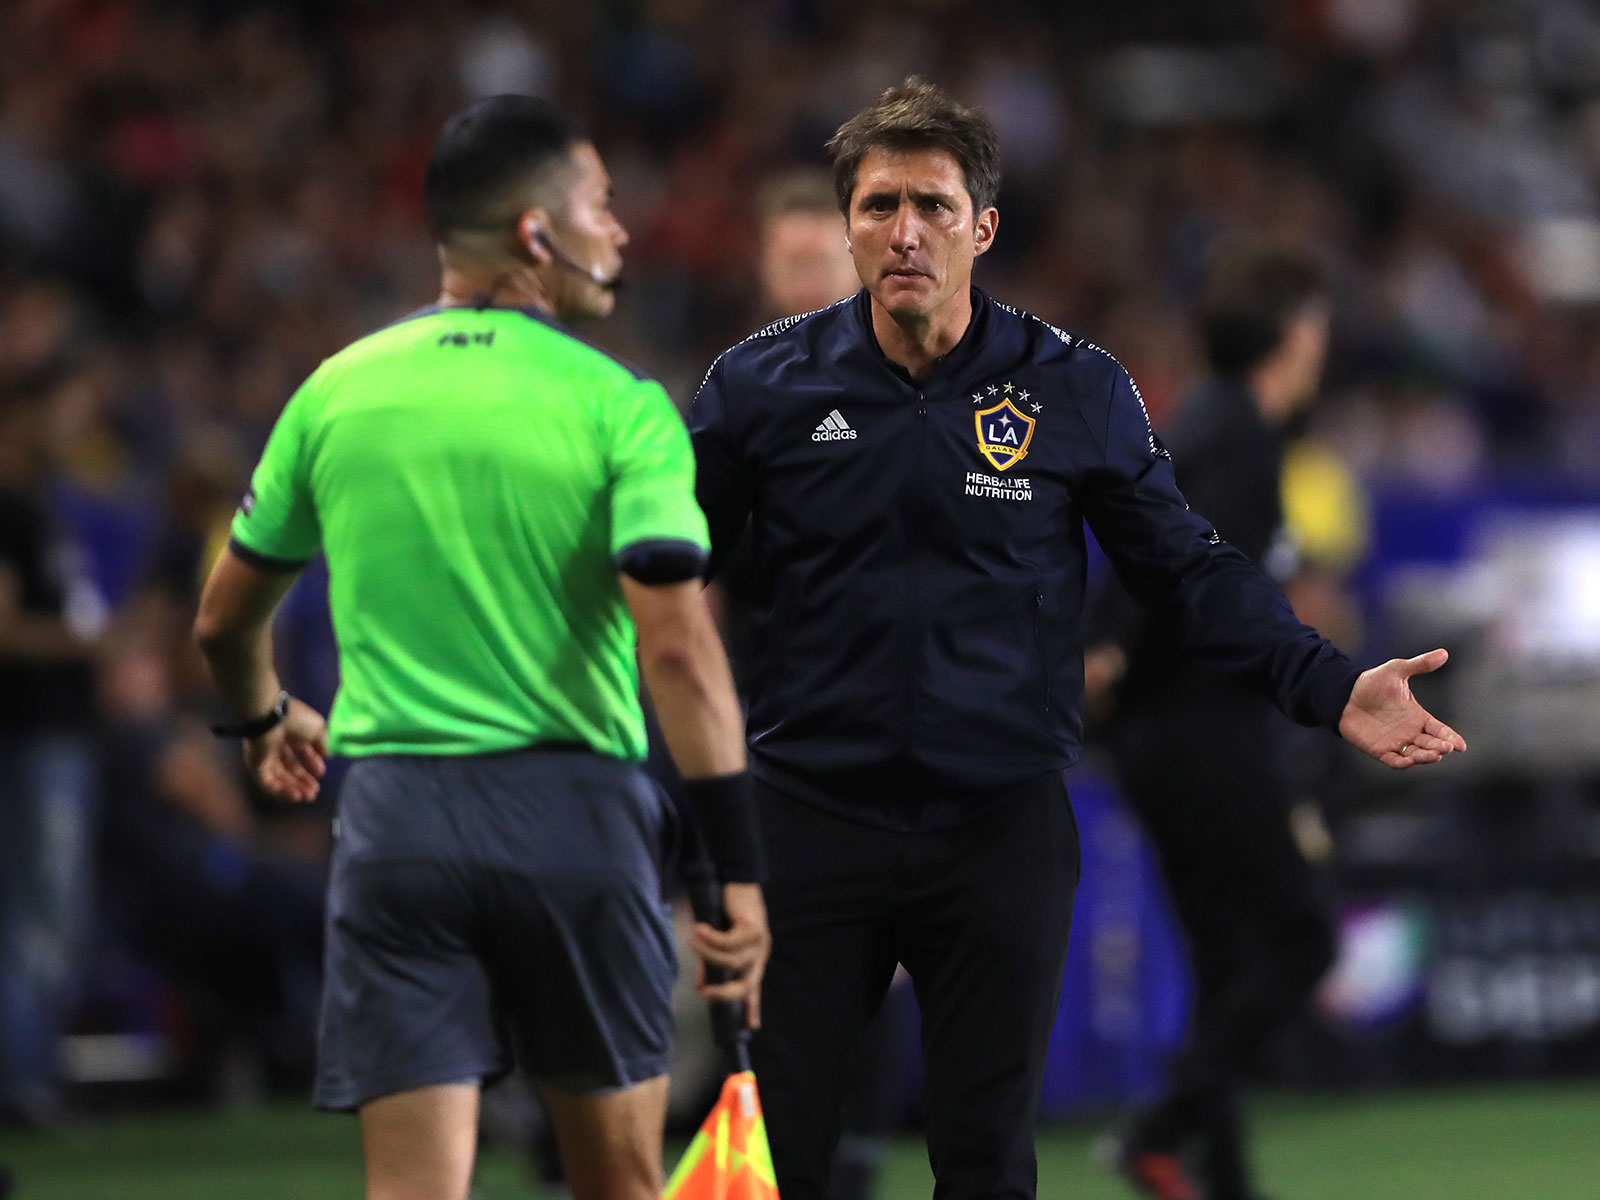 Guillermo Barros Schelotto and the LA Galaxy are in peril of missing the playoffs